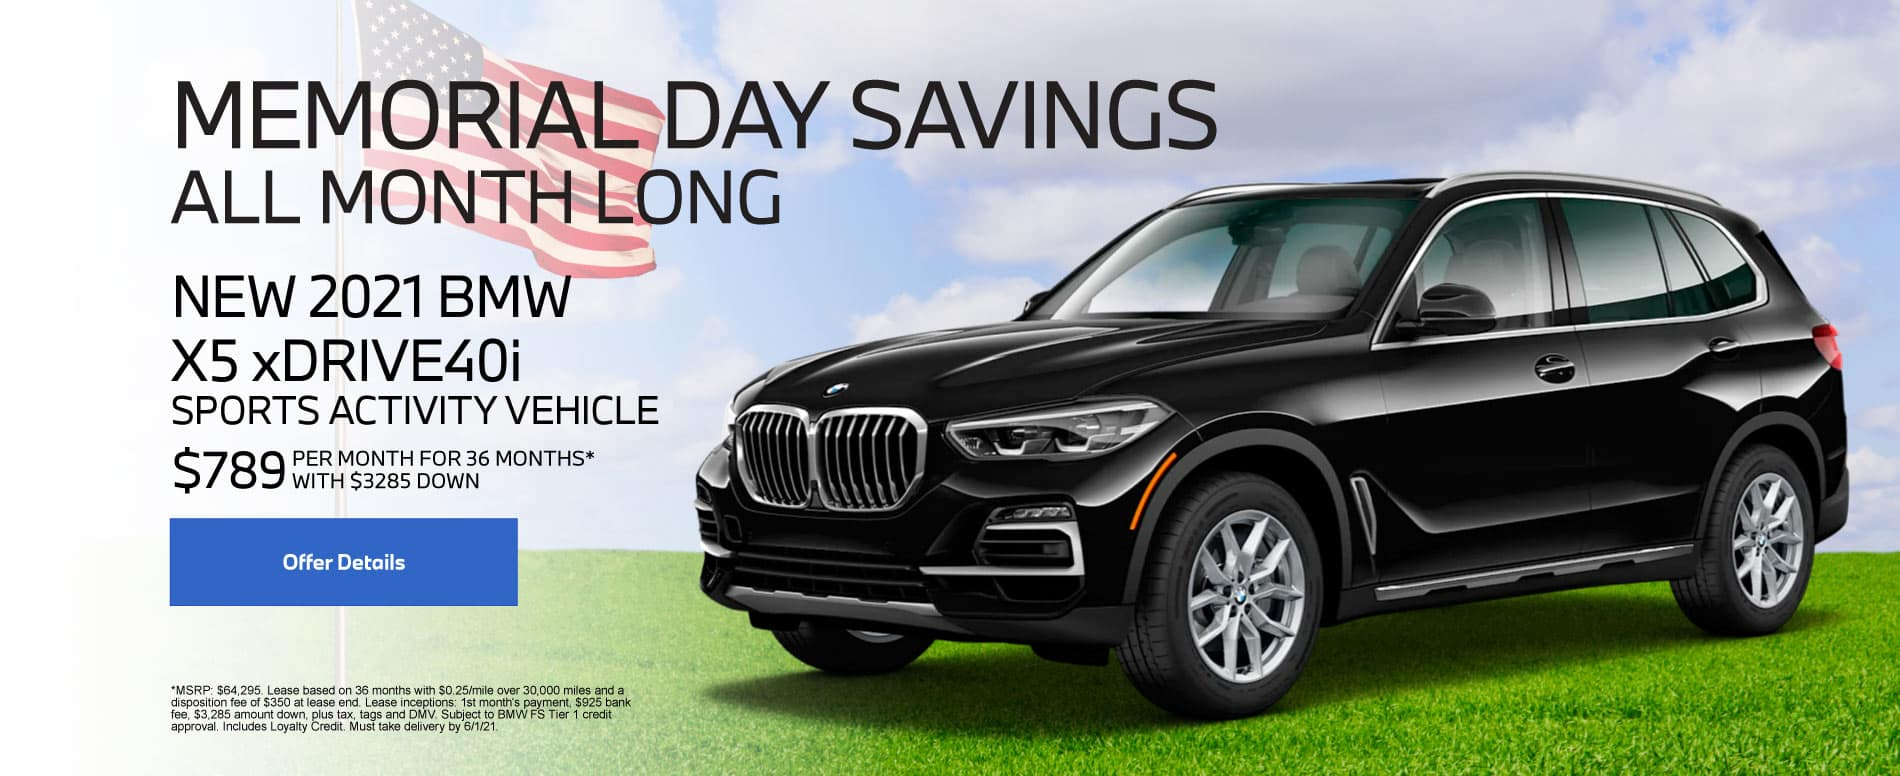 New 2021 BMW X5 $789 per month - Click for Details